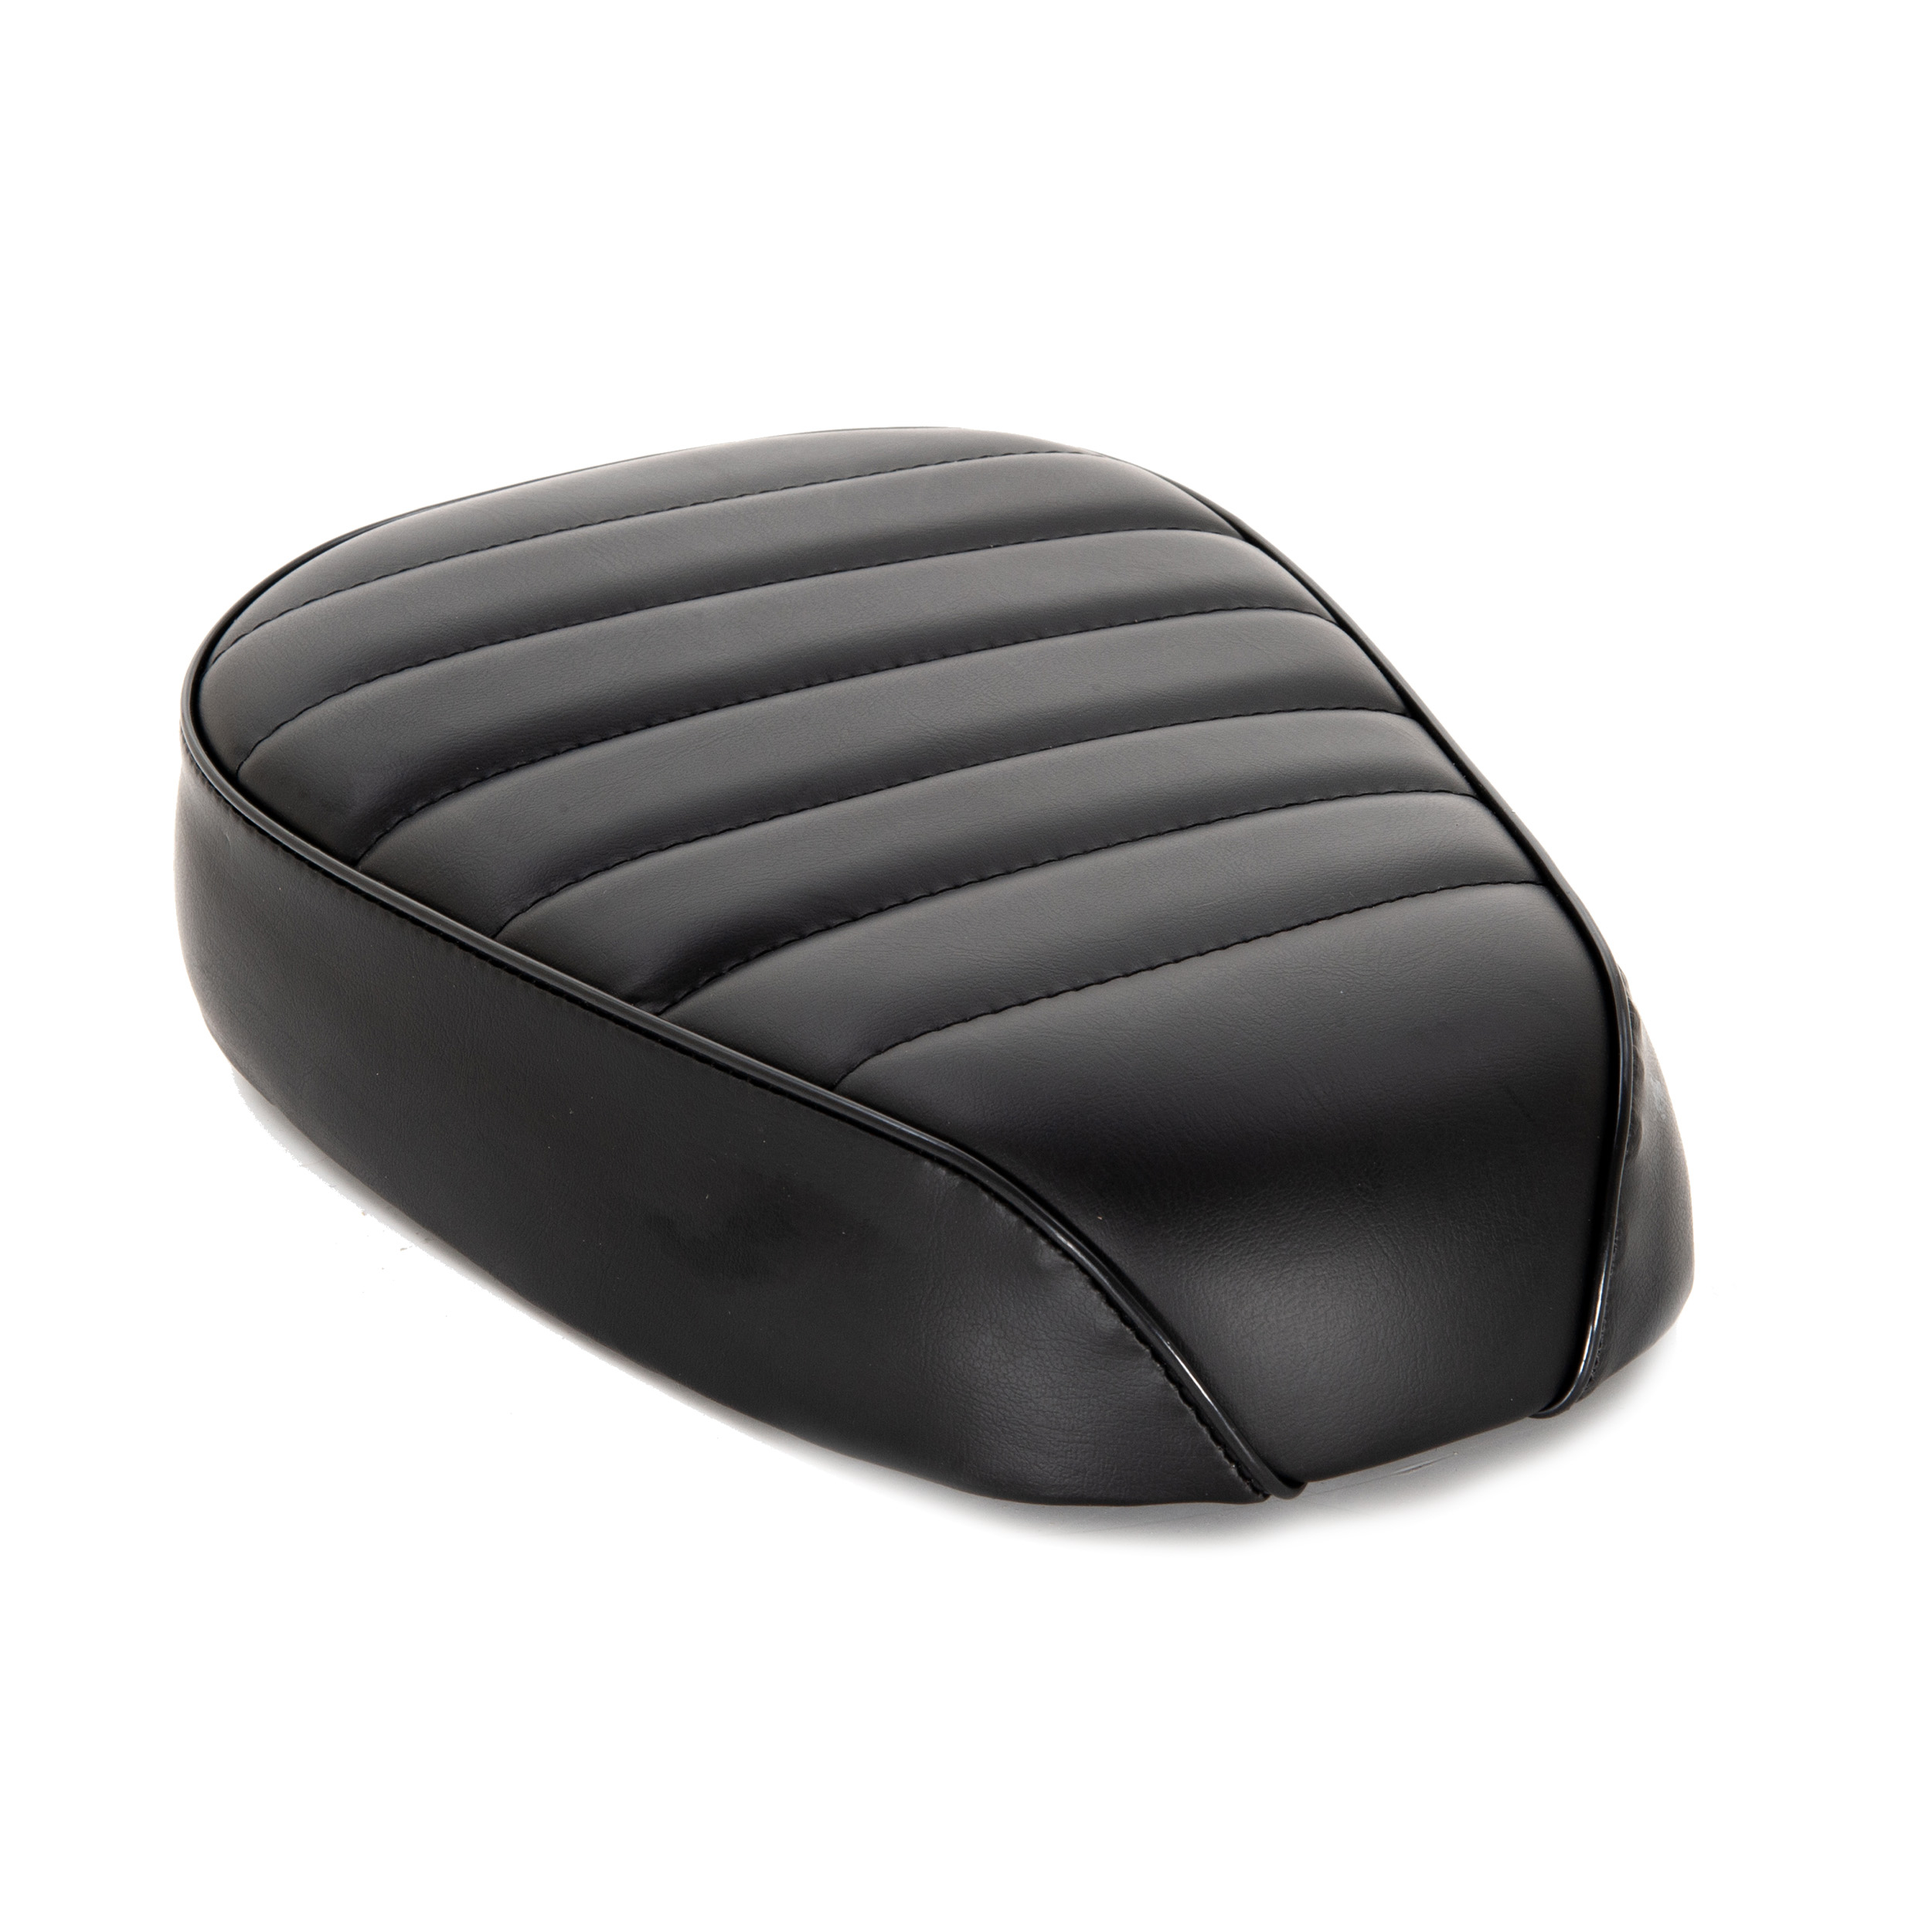 Selle simple pour Azur Scooter X10 et HR8